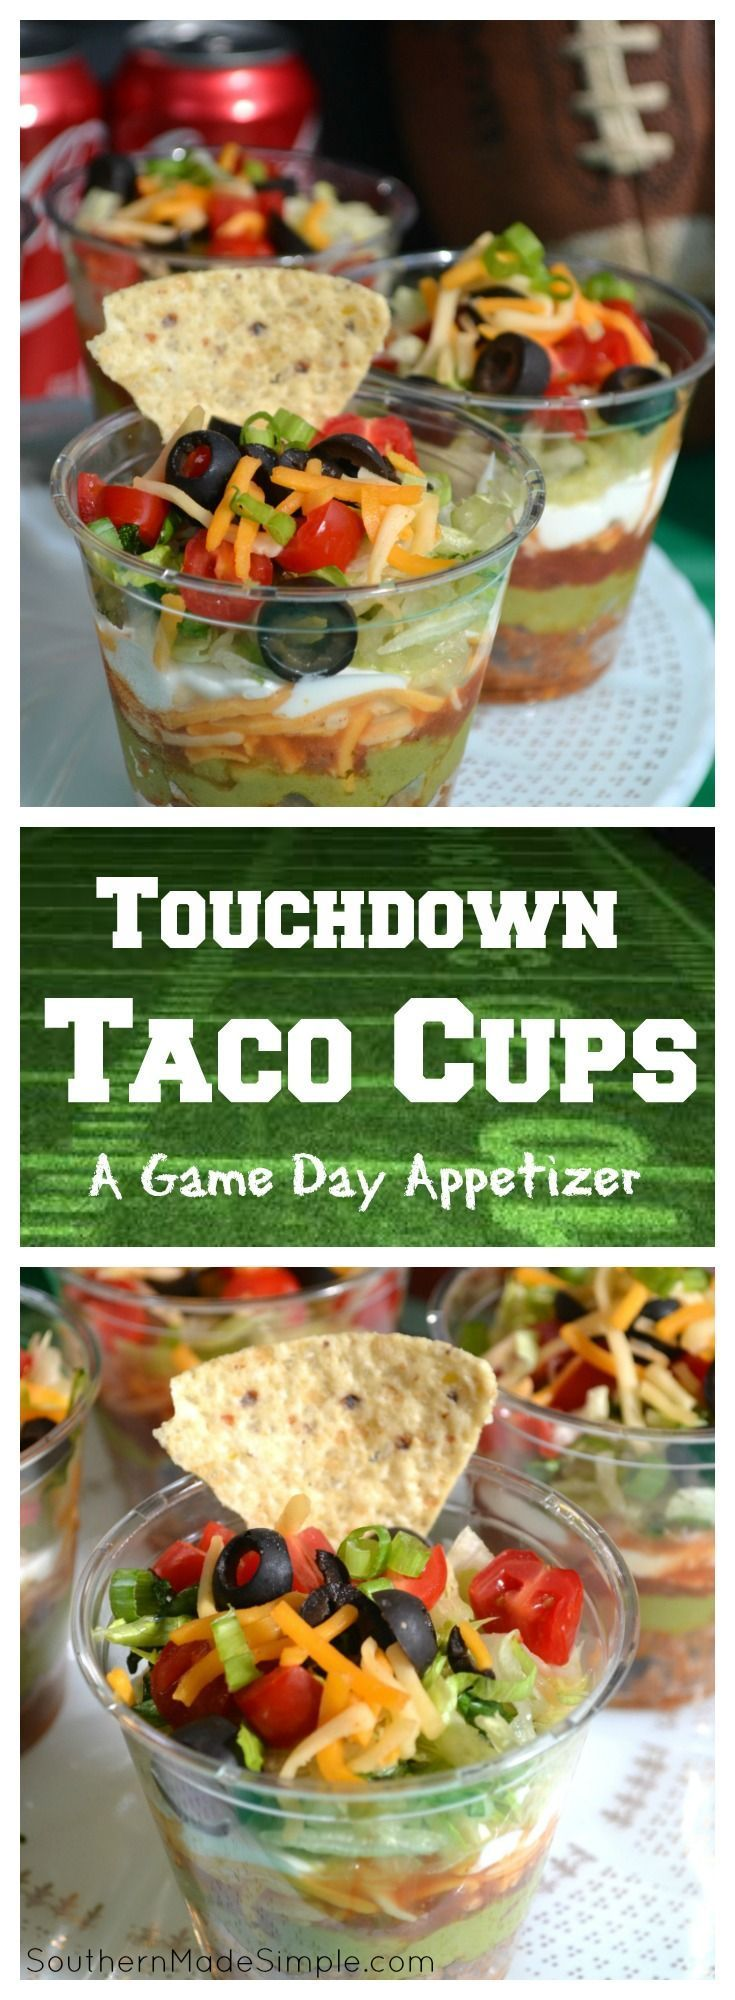 """Looking for a great game day snack? Look no further! These delicious """"touchdown"""" taco cups will have you cheering and rooting for more! No more hovering over the dip bowl either! You can take you own taco cups wherever the party's at!"""